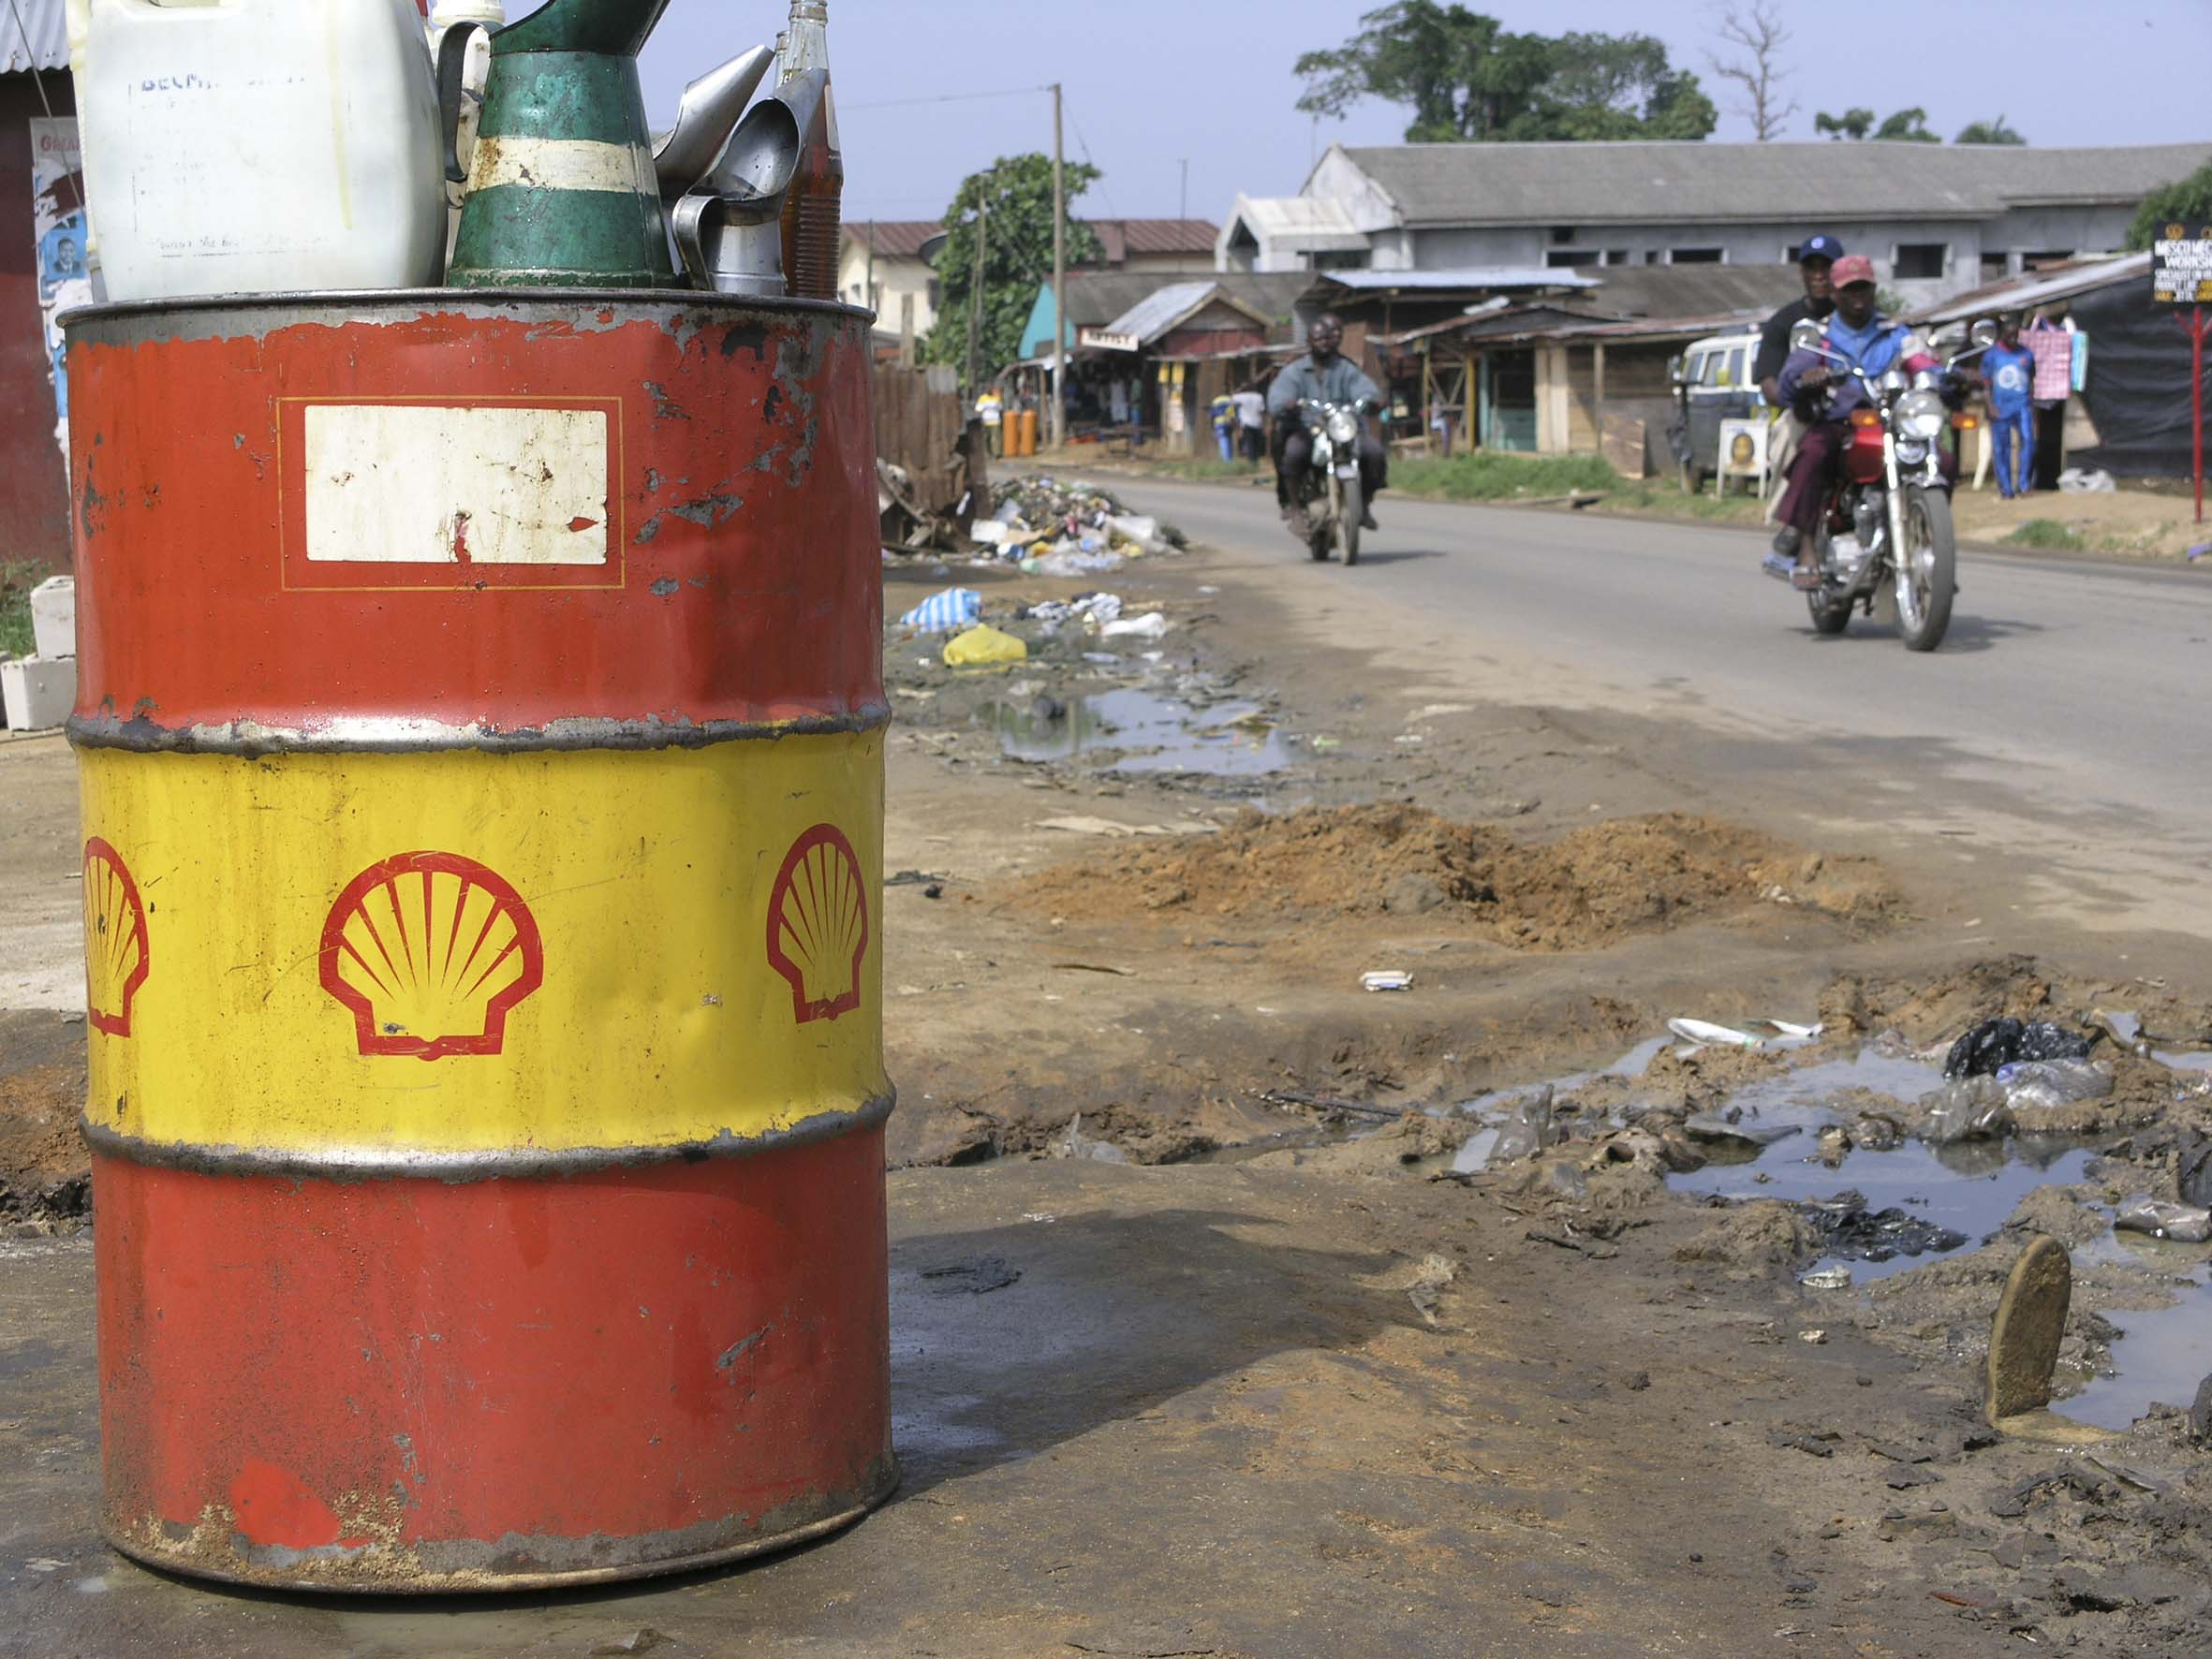 Oil and gas business plan in nigeria conflict